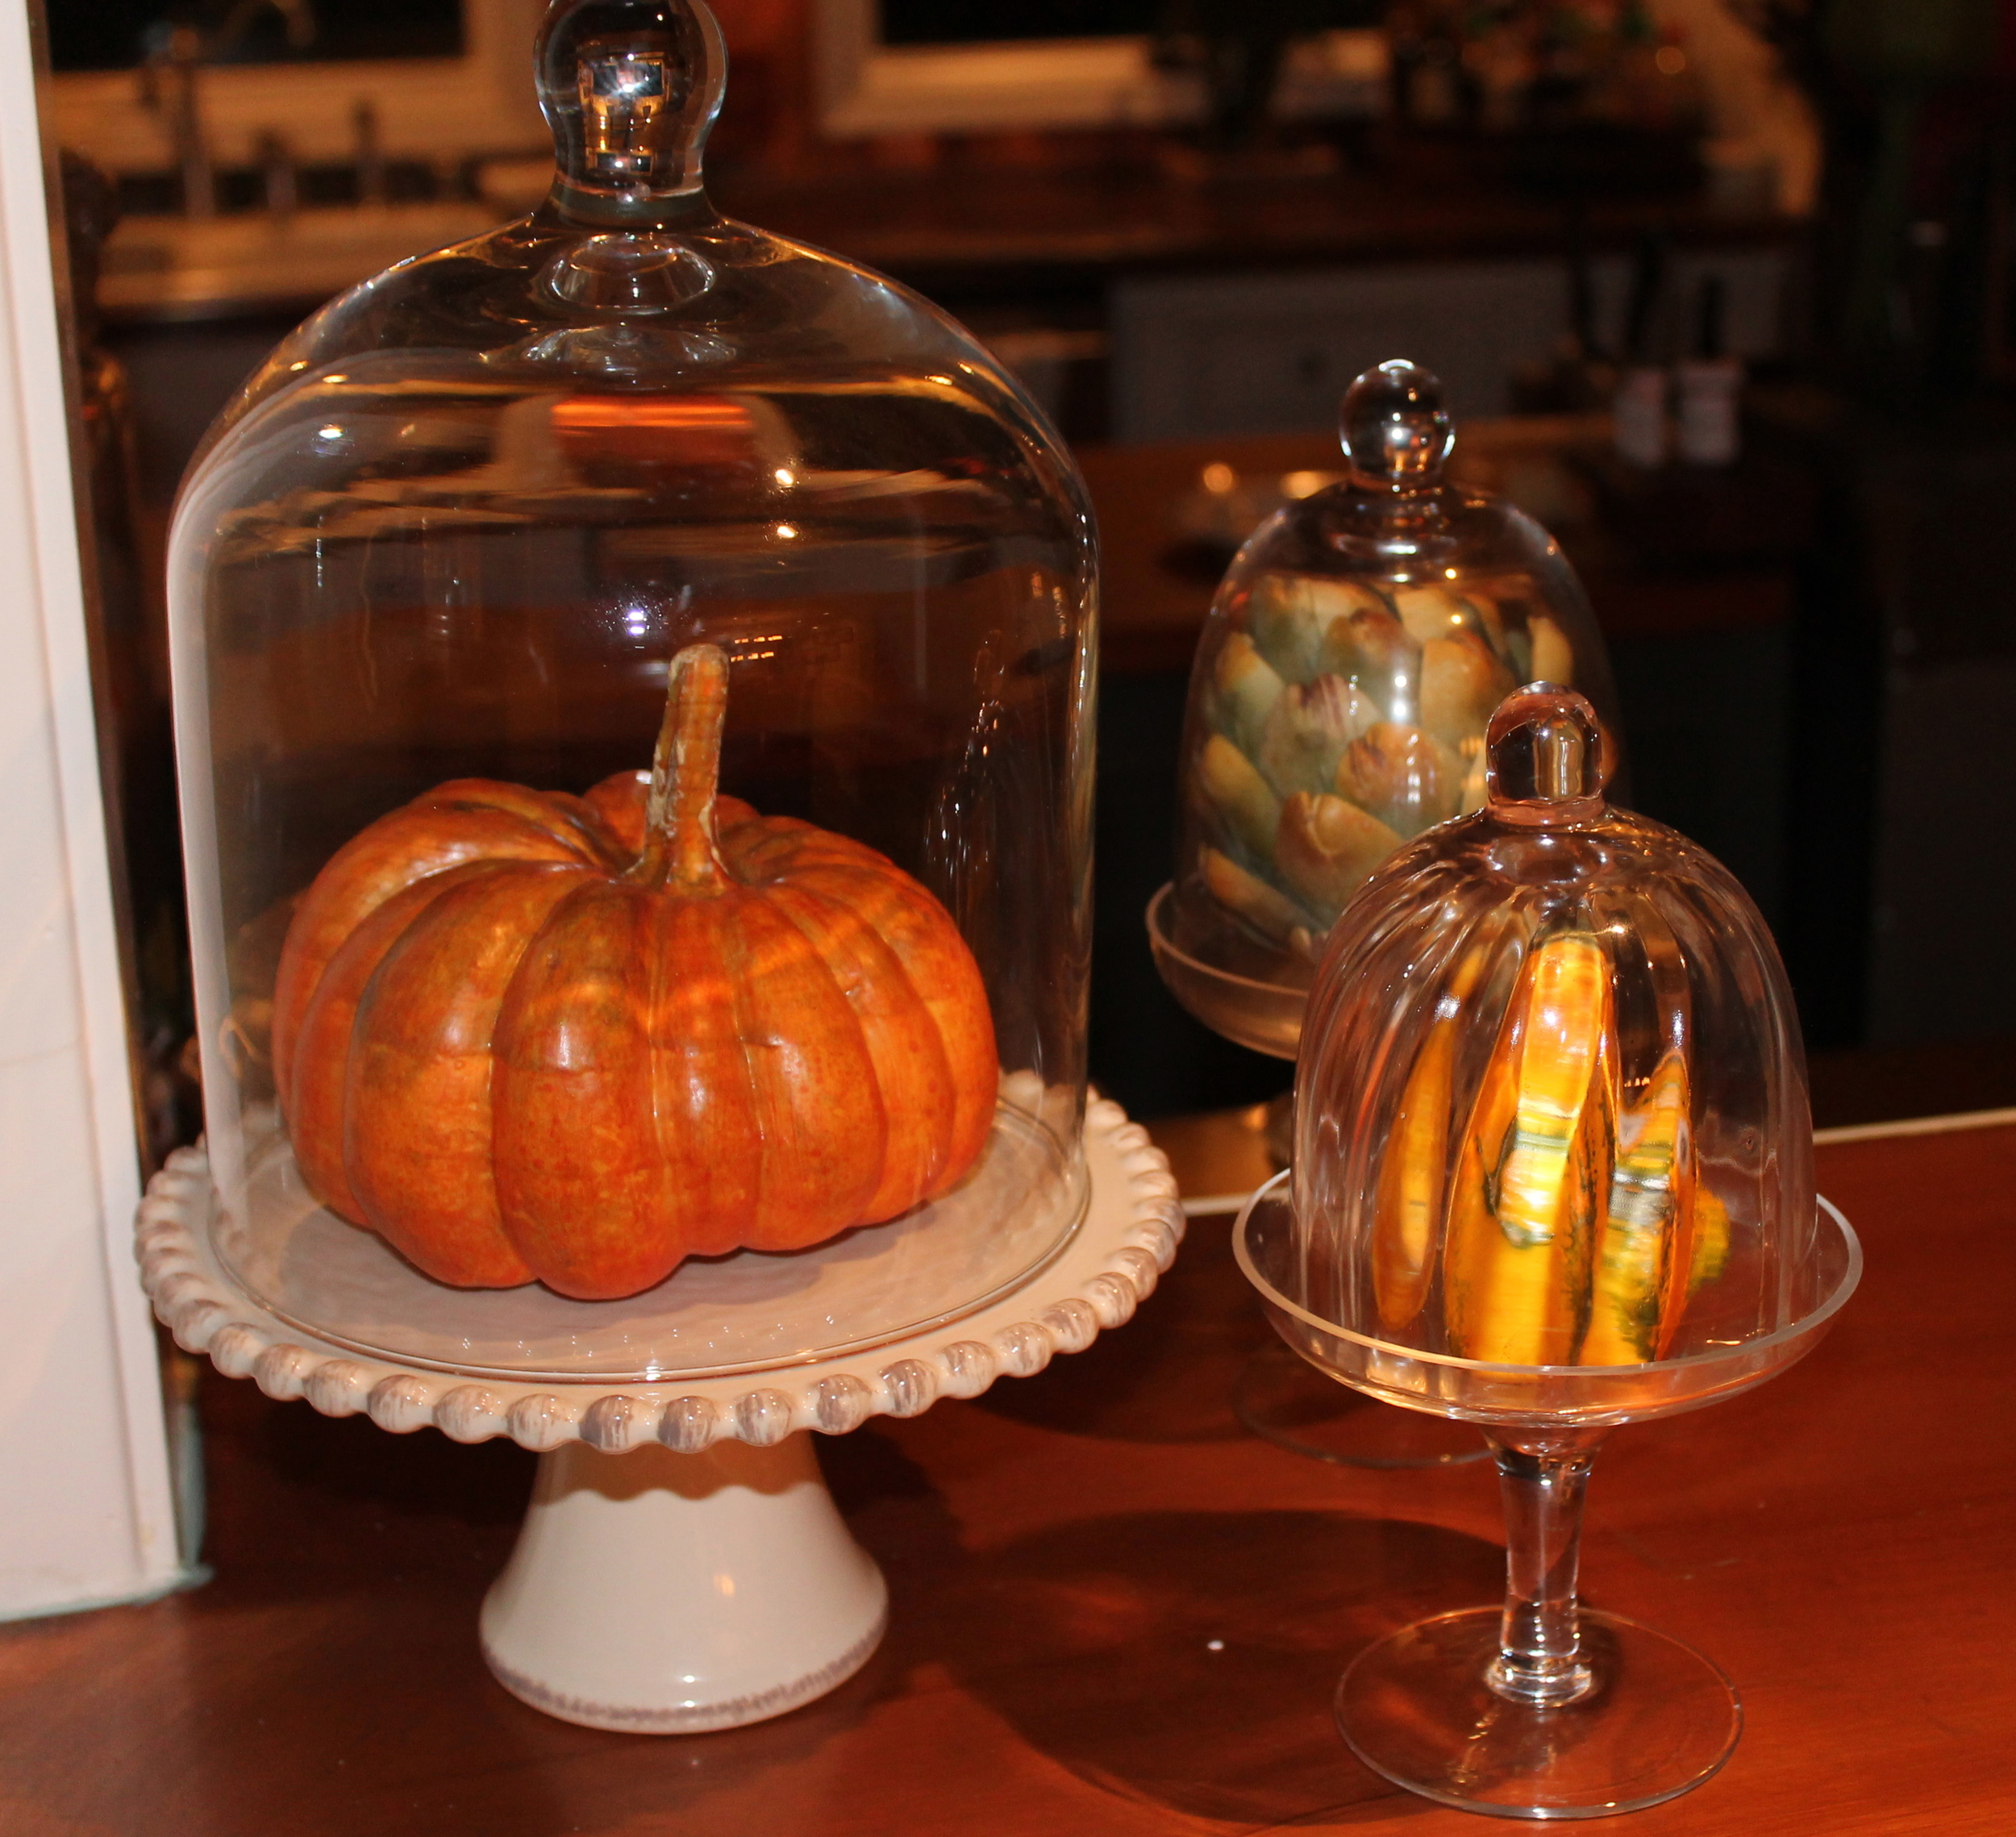 Even the kitchen counters get a touch of fall with gourds in cake domes.